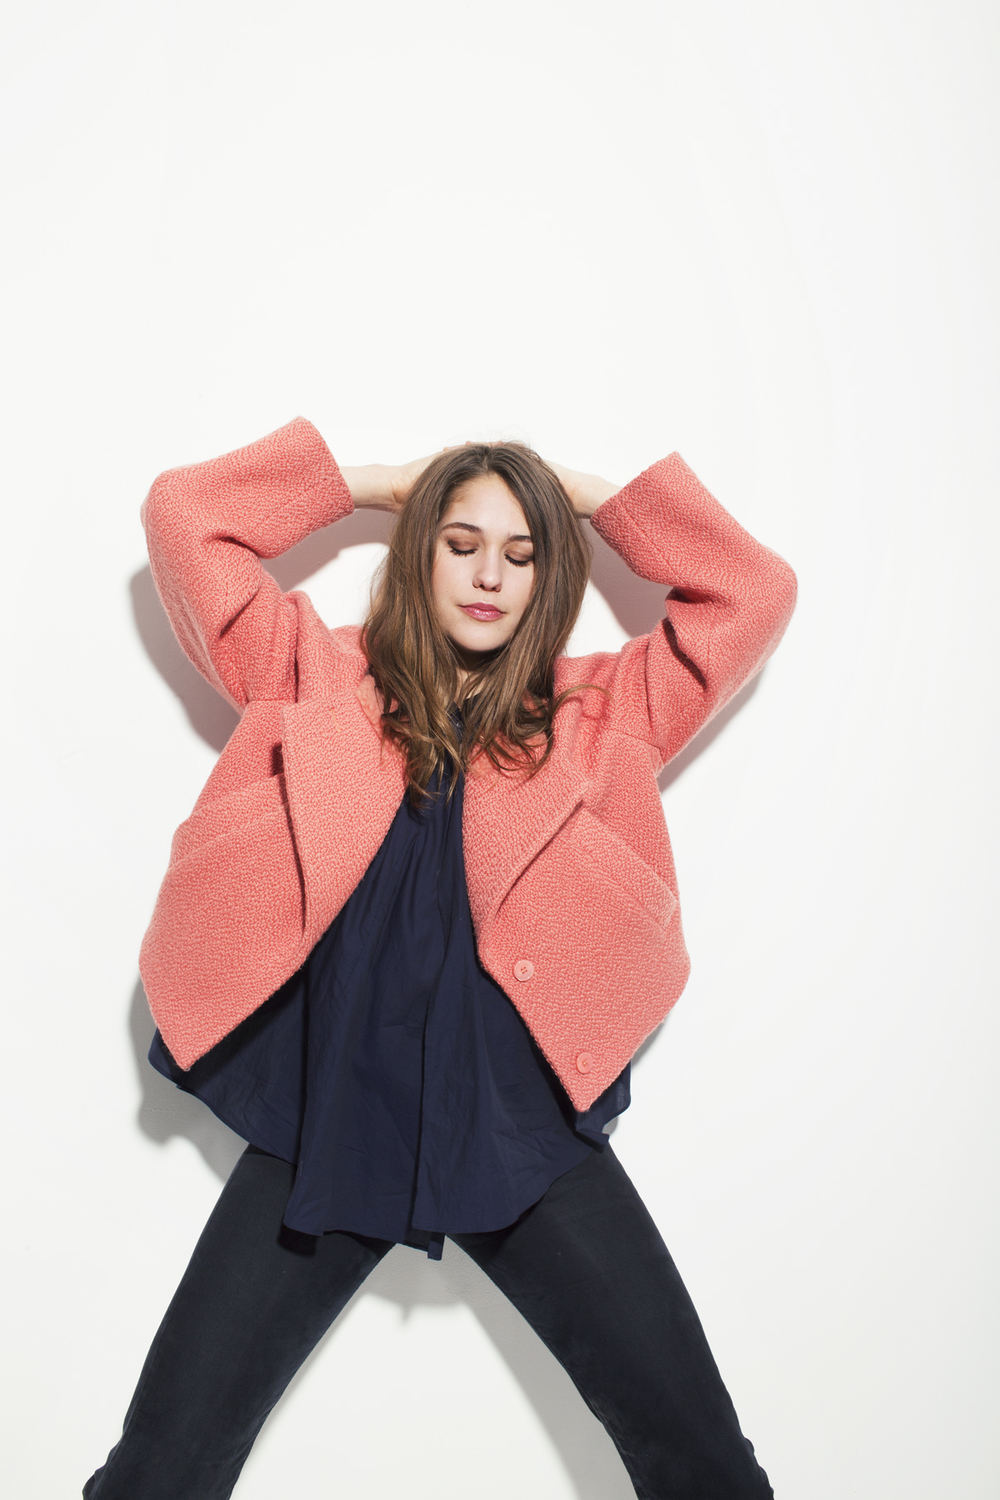 Lola Kirke for Paper Magazine photographed by Kate Owen photographer